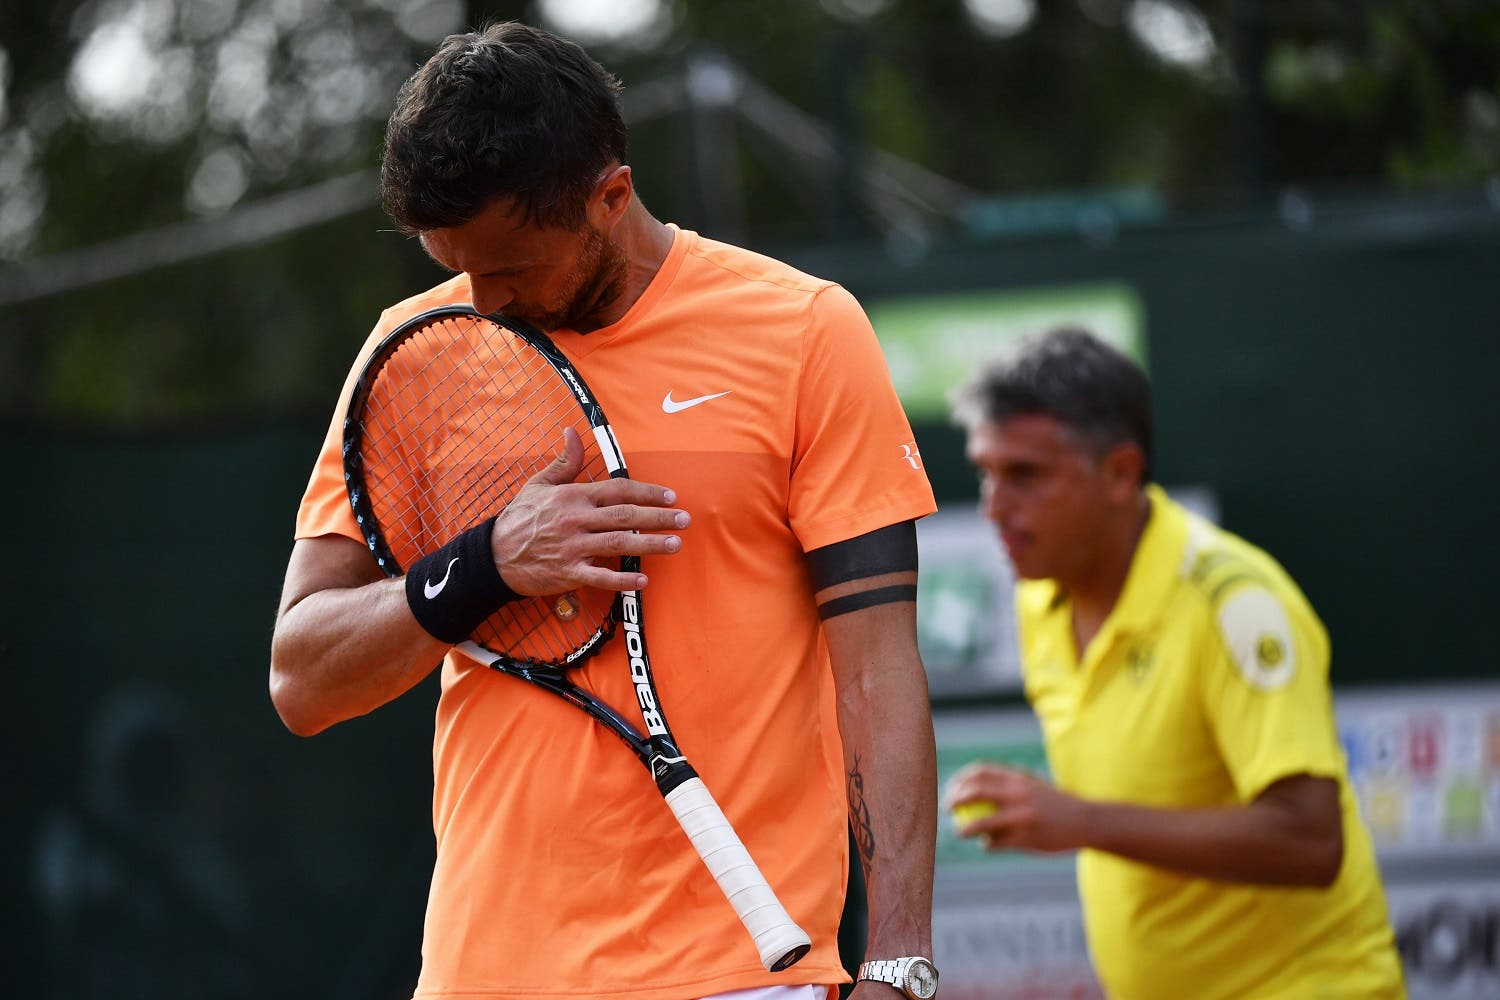 AC Milan's former player Paolo Maldini (L) reacts during the men's doubles tennis match, with his partner Stefano Landonio against Poland's player Tomasz Bednarek and Nederland's player David Pel during the ATP Challenger Tour on June 27, 2017 at the Aspria Tennis Club in Milan. Marco BERTORELLO / AFP